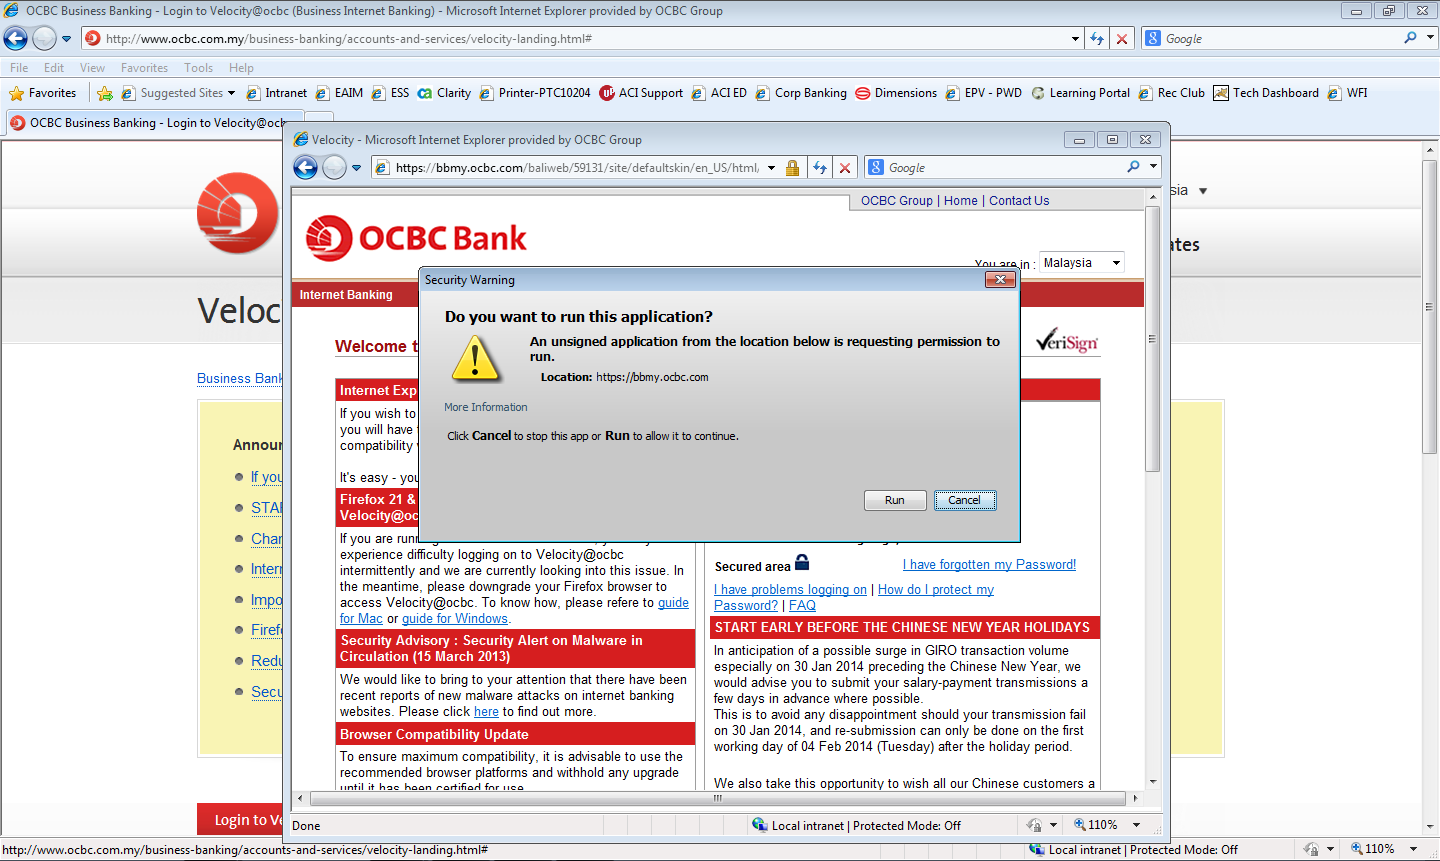 Login using Internet Explorer 1. Launch Internet Explorer and go to bbmy.ocbc.